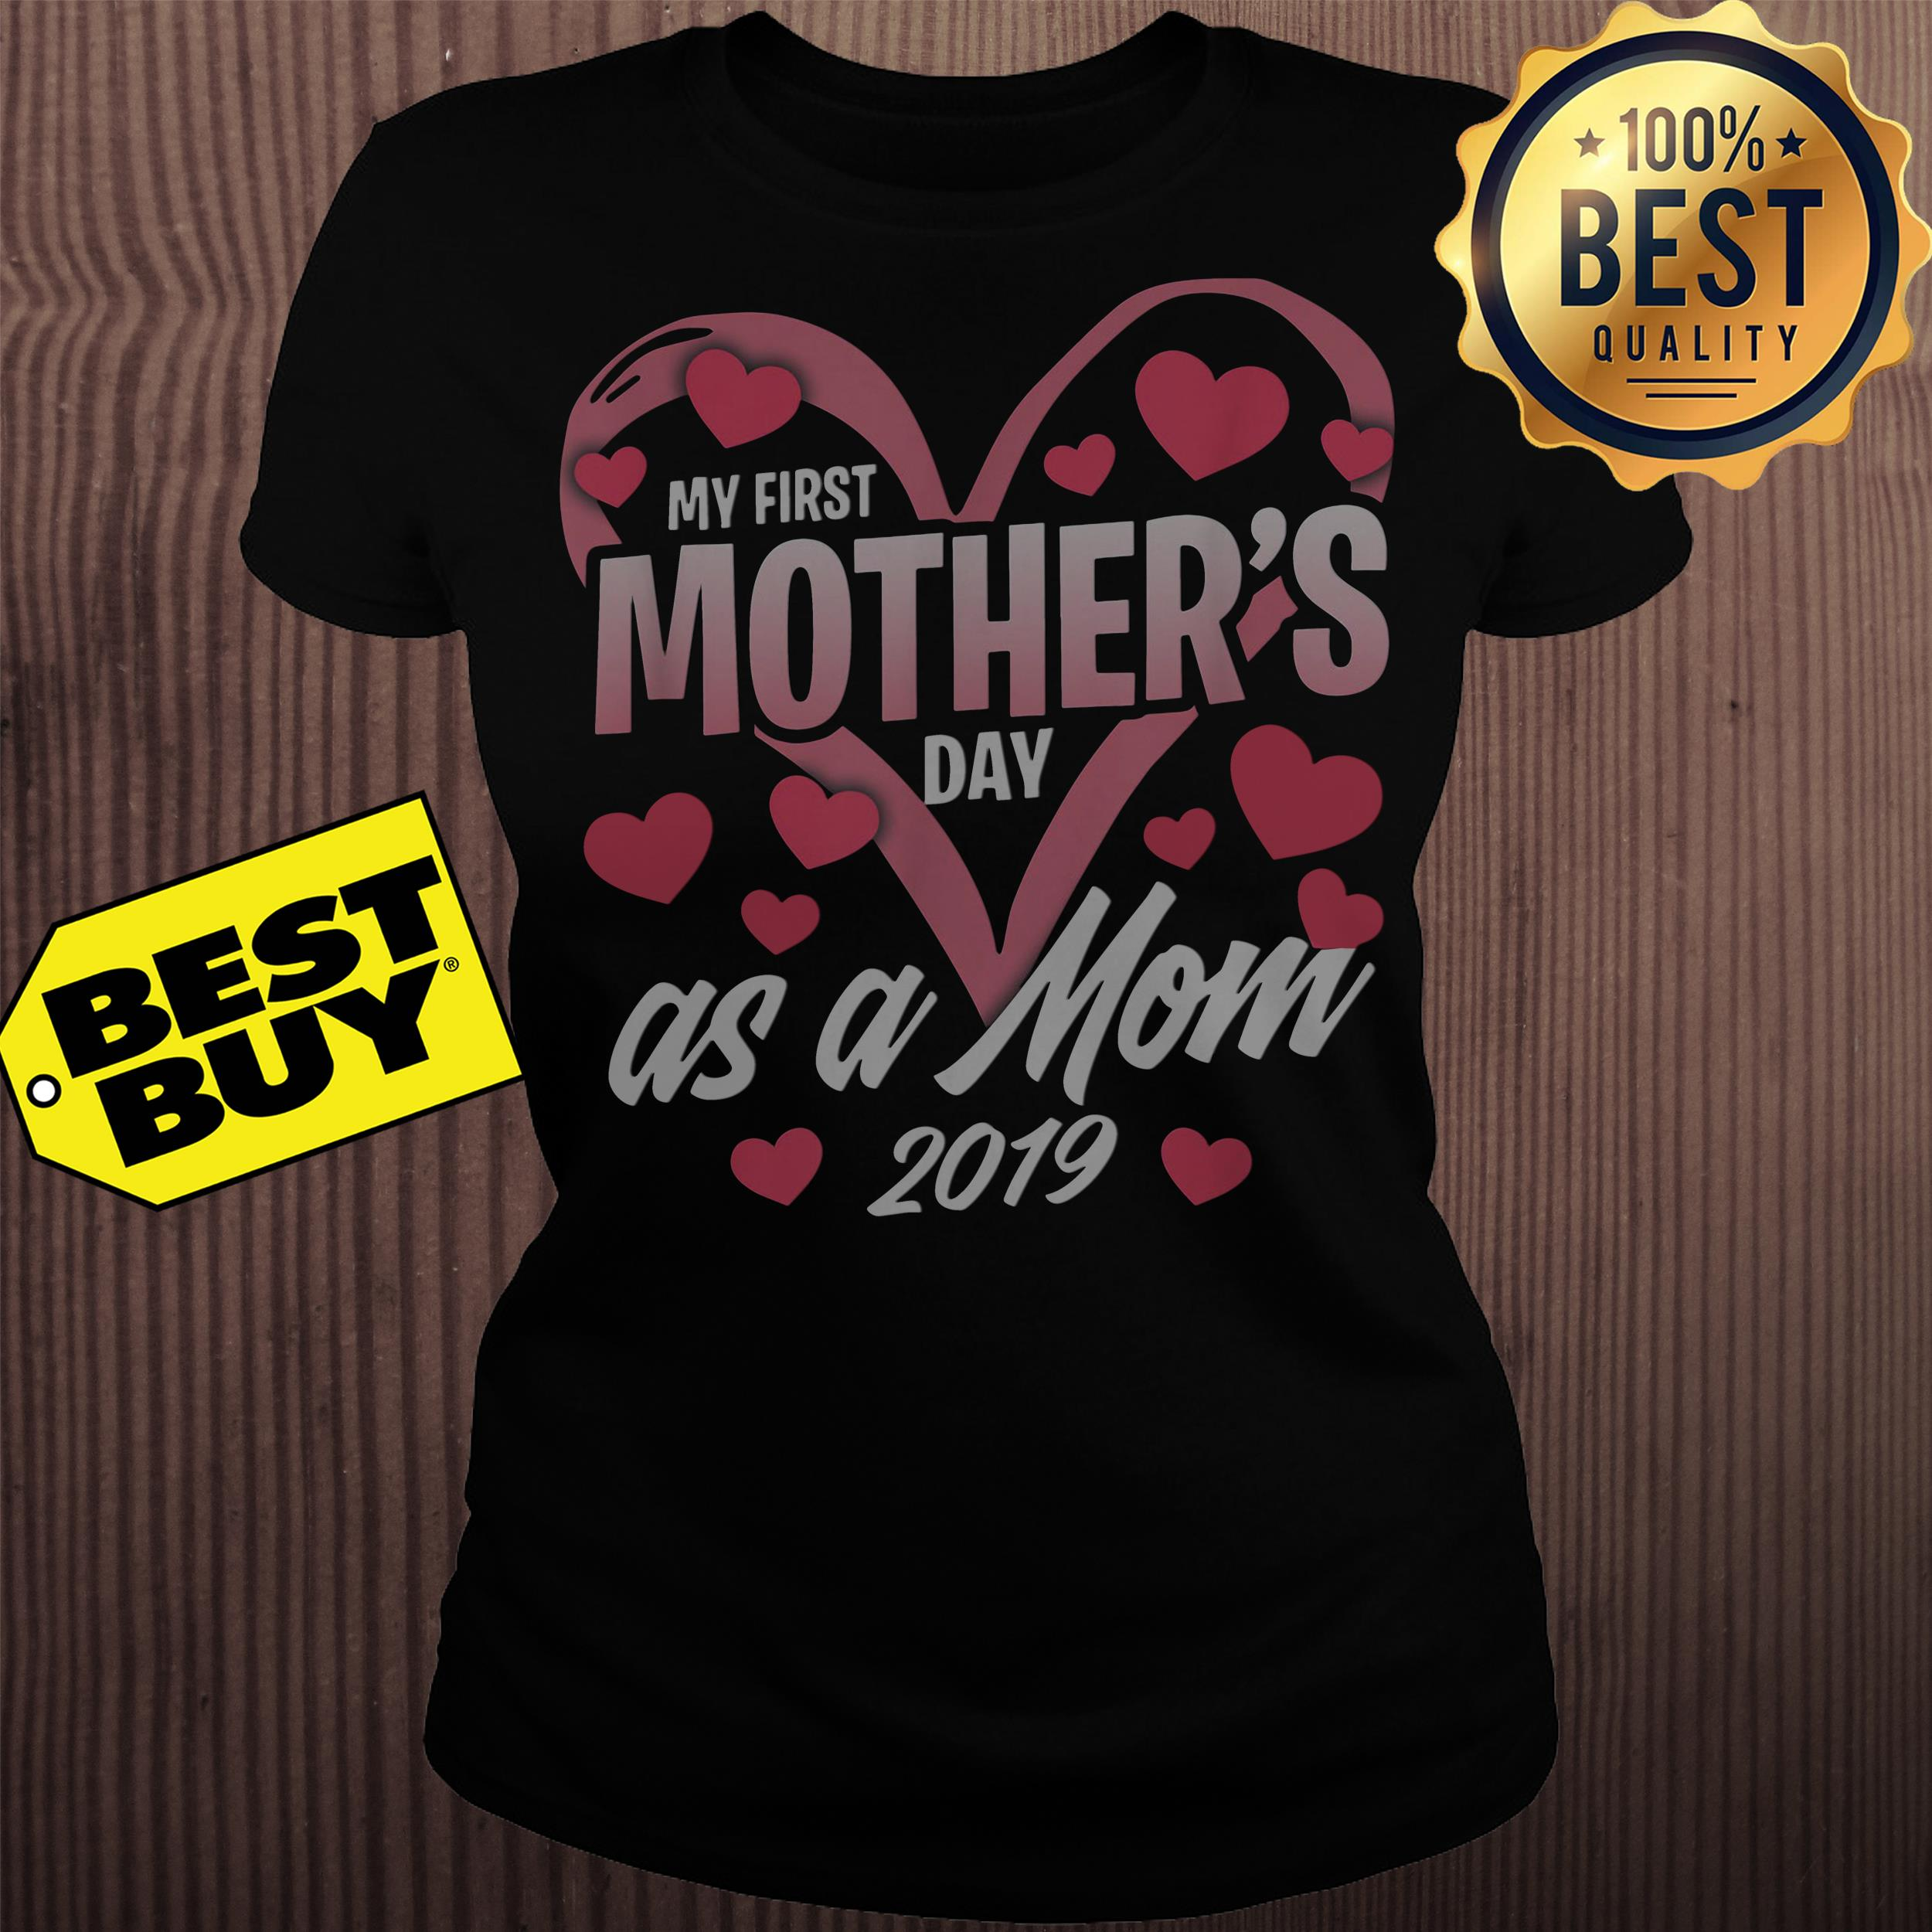 My first mother's day as a mom 2019 ladies tee